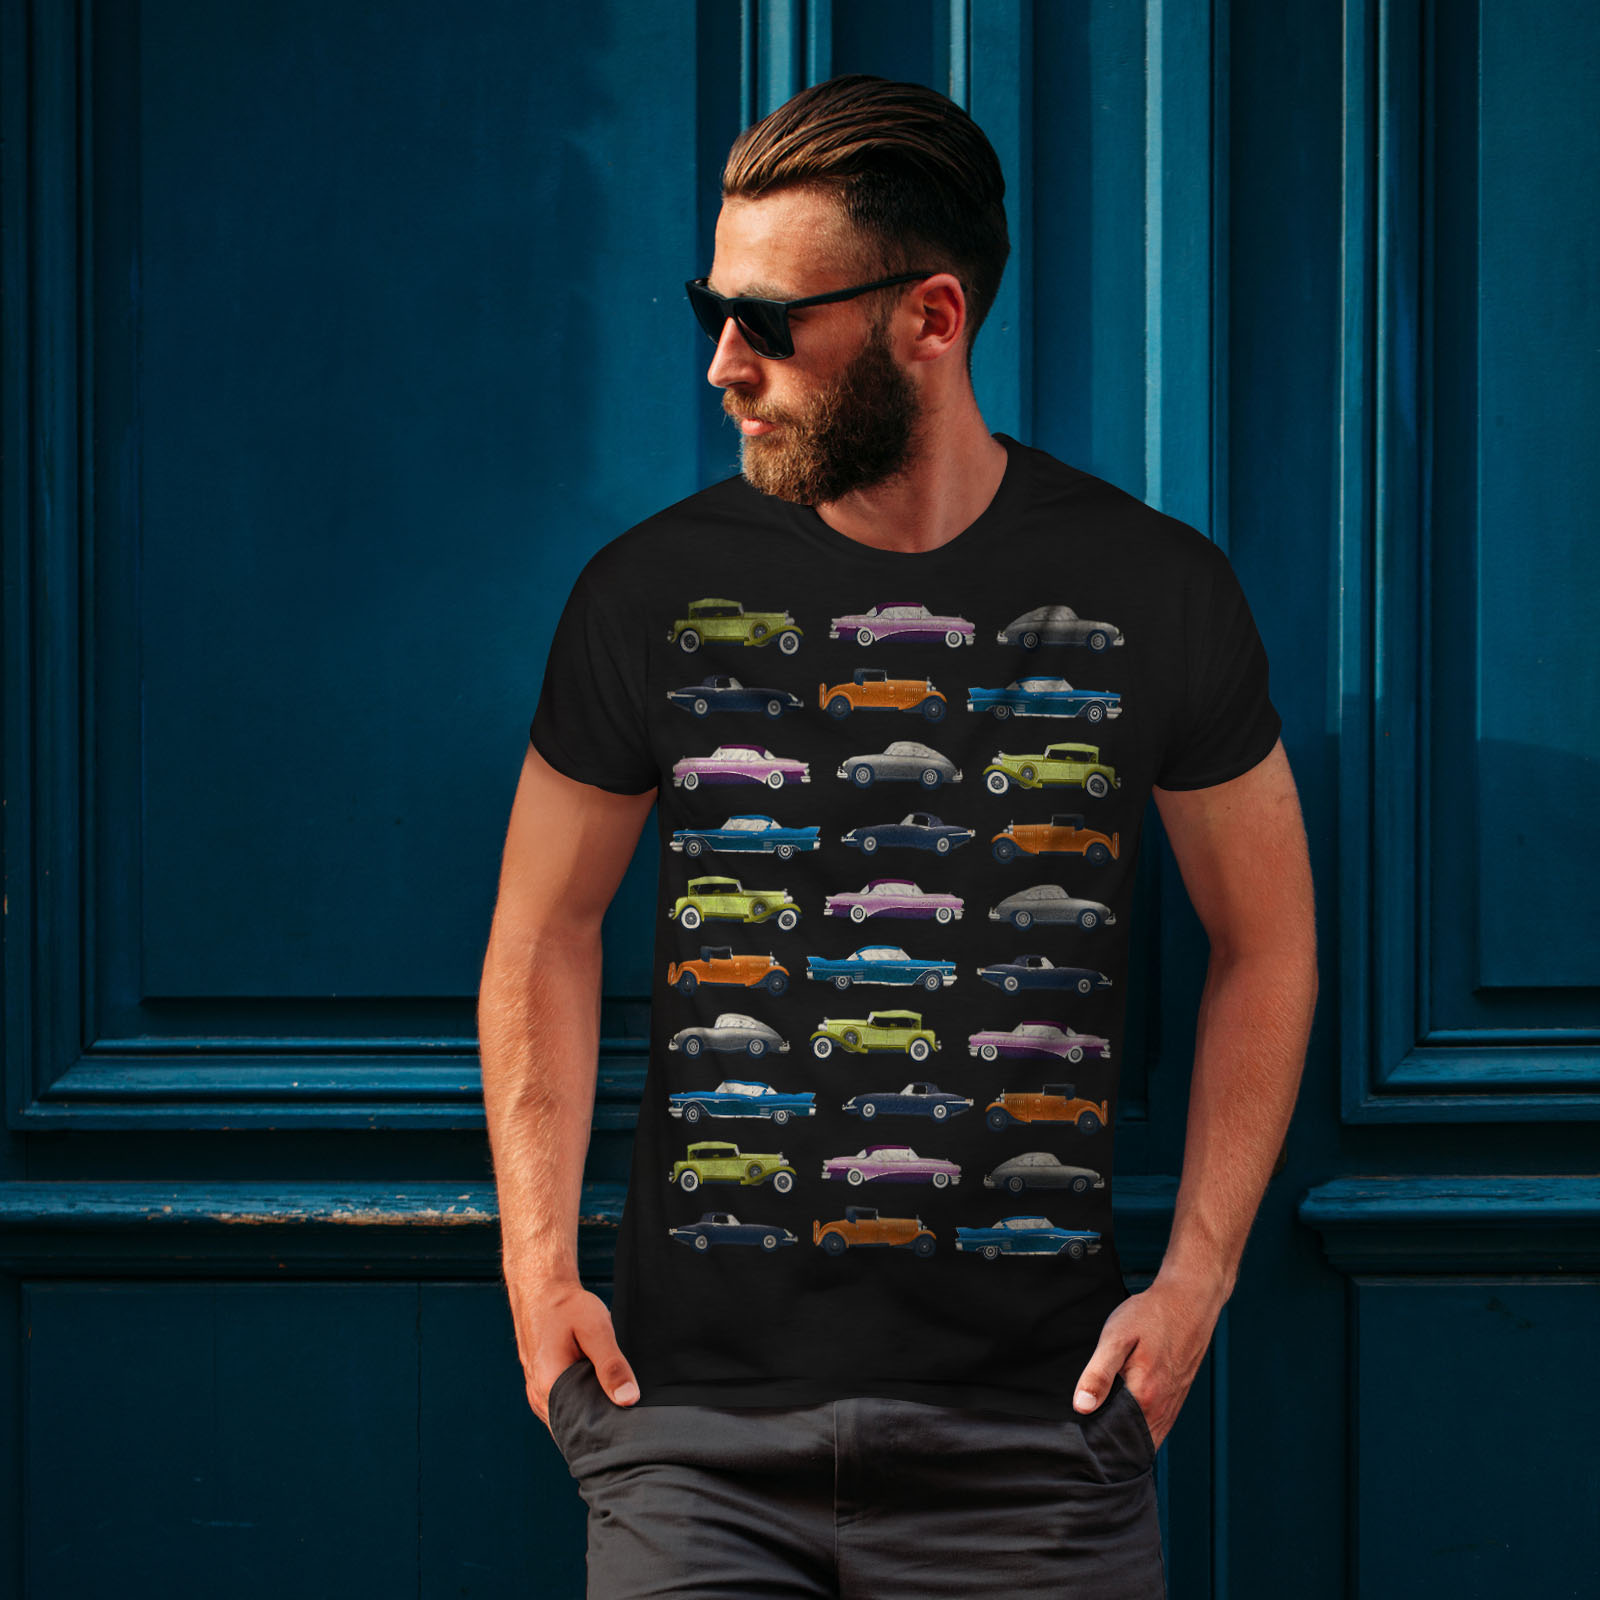 Wellcoda-Classic-Old-Pattern-Car-Mens-T-shirt-Retro-Graphic-Design-Printed-Tee thumbnail 4